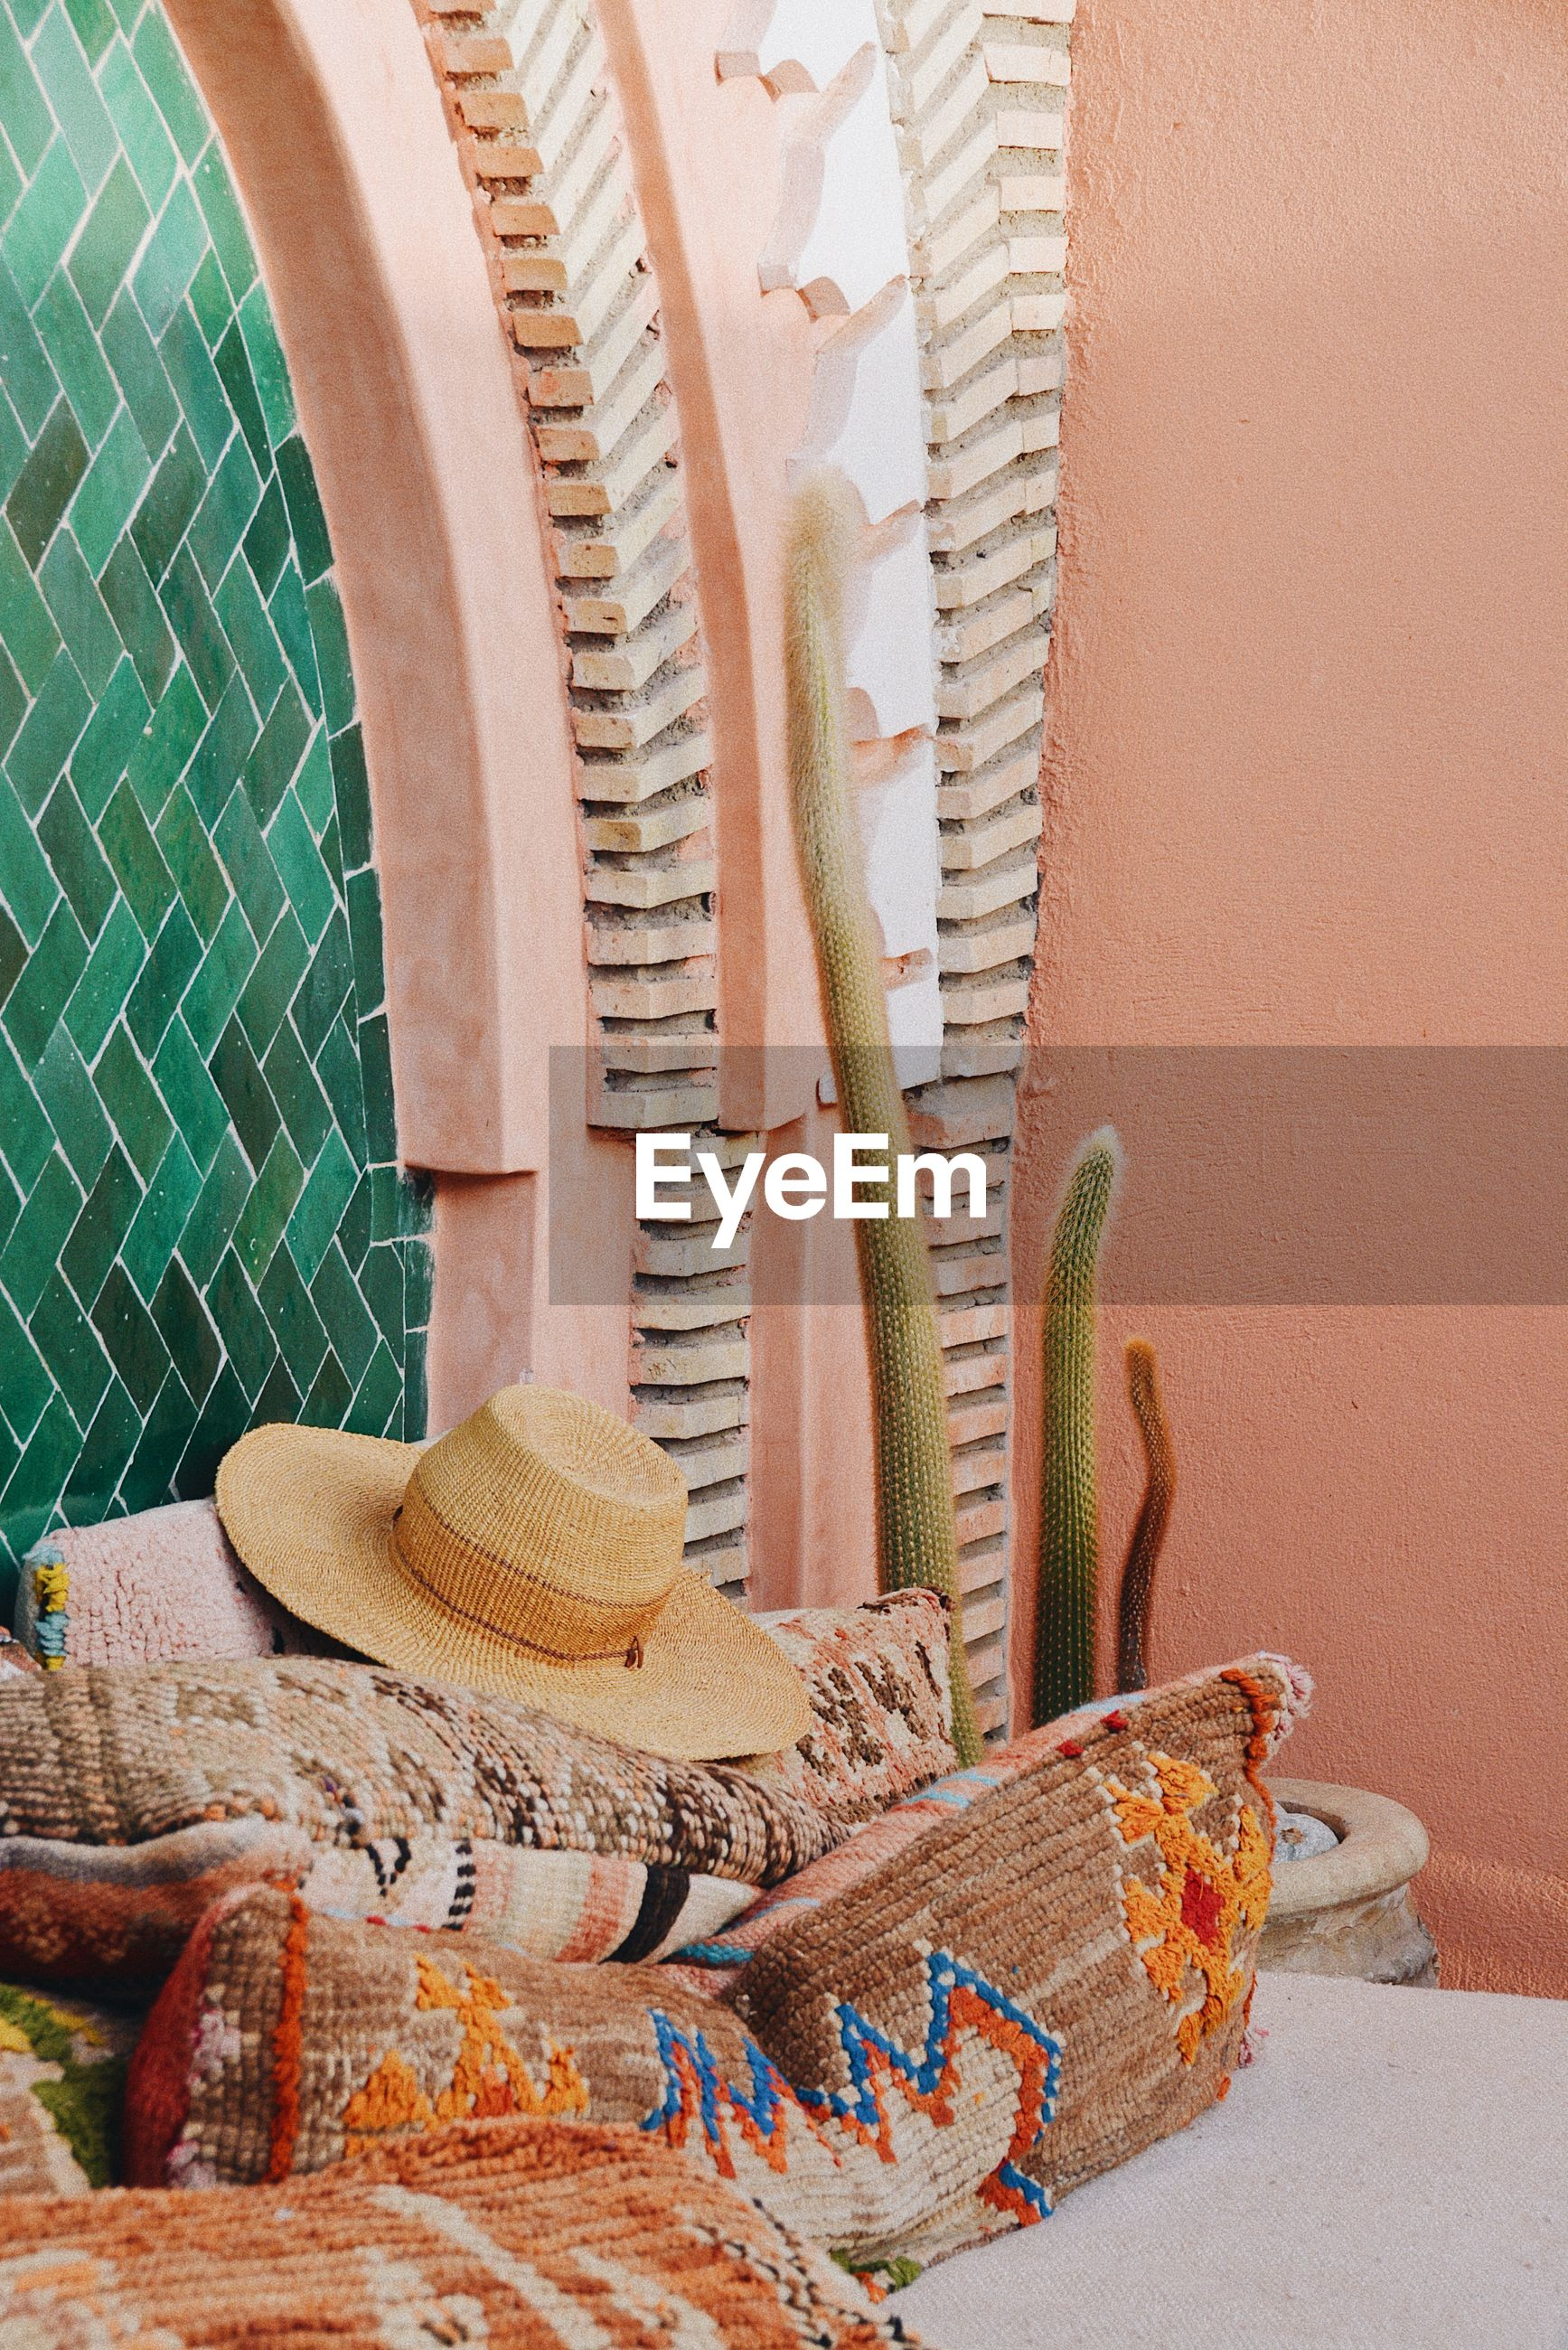 Hat and textile against wall